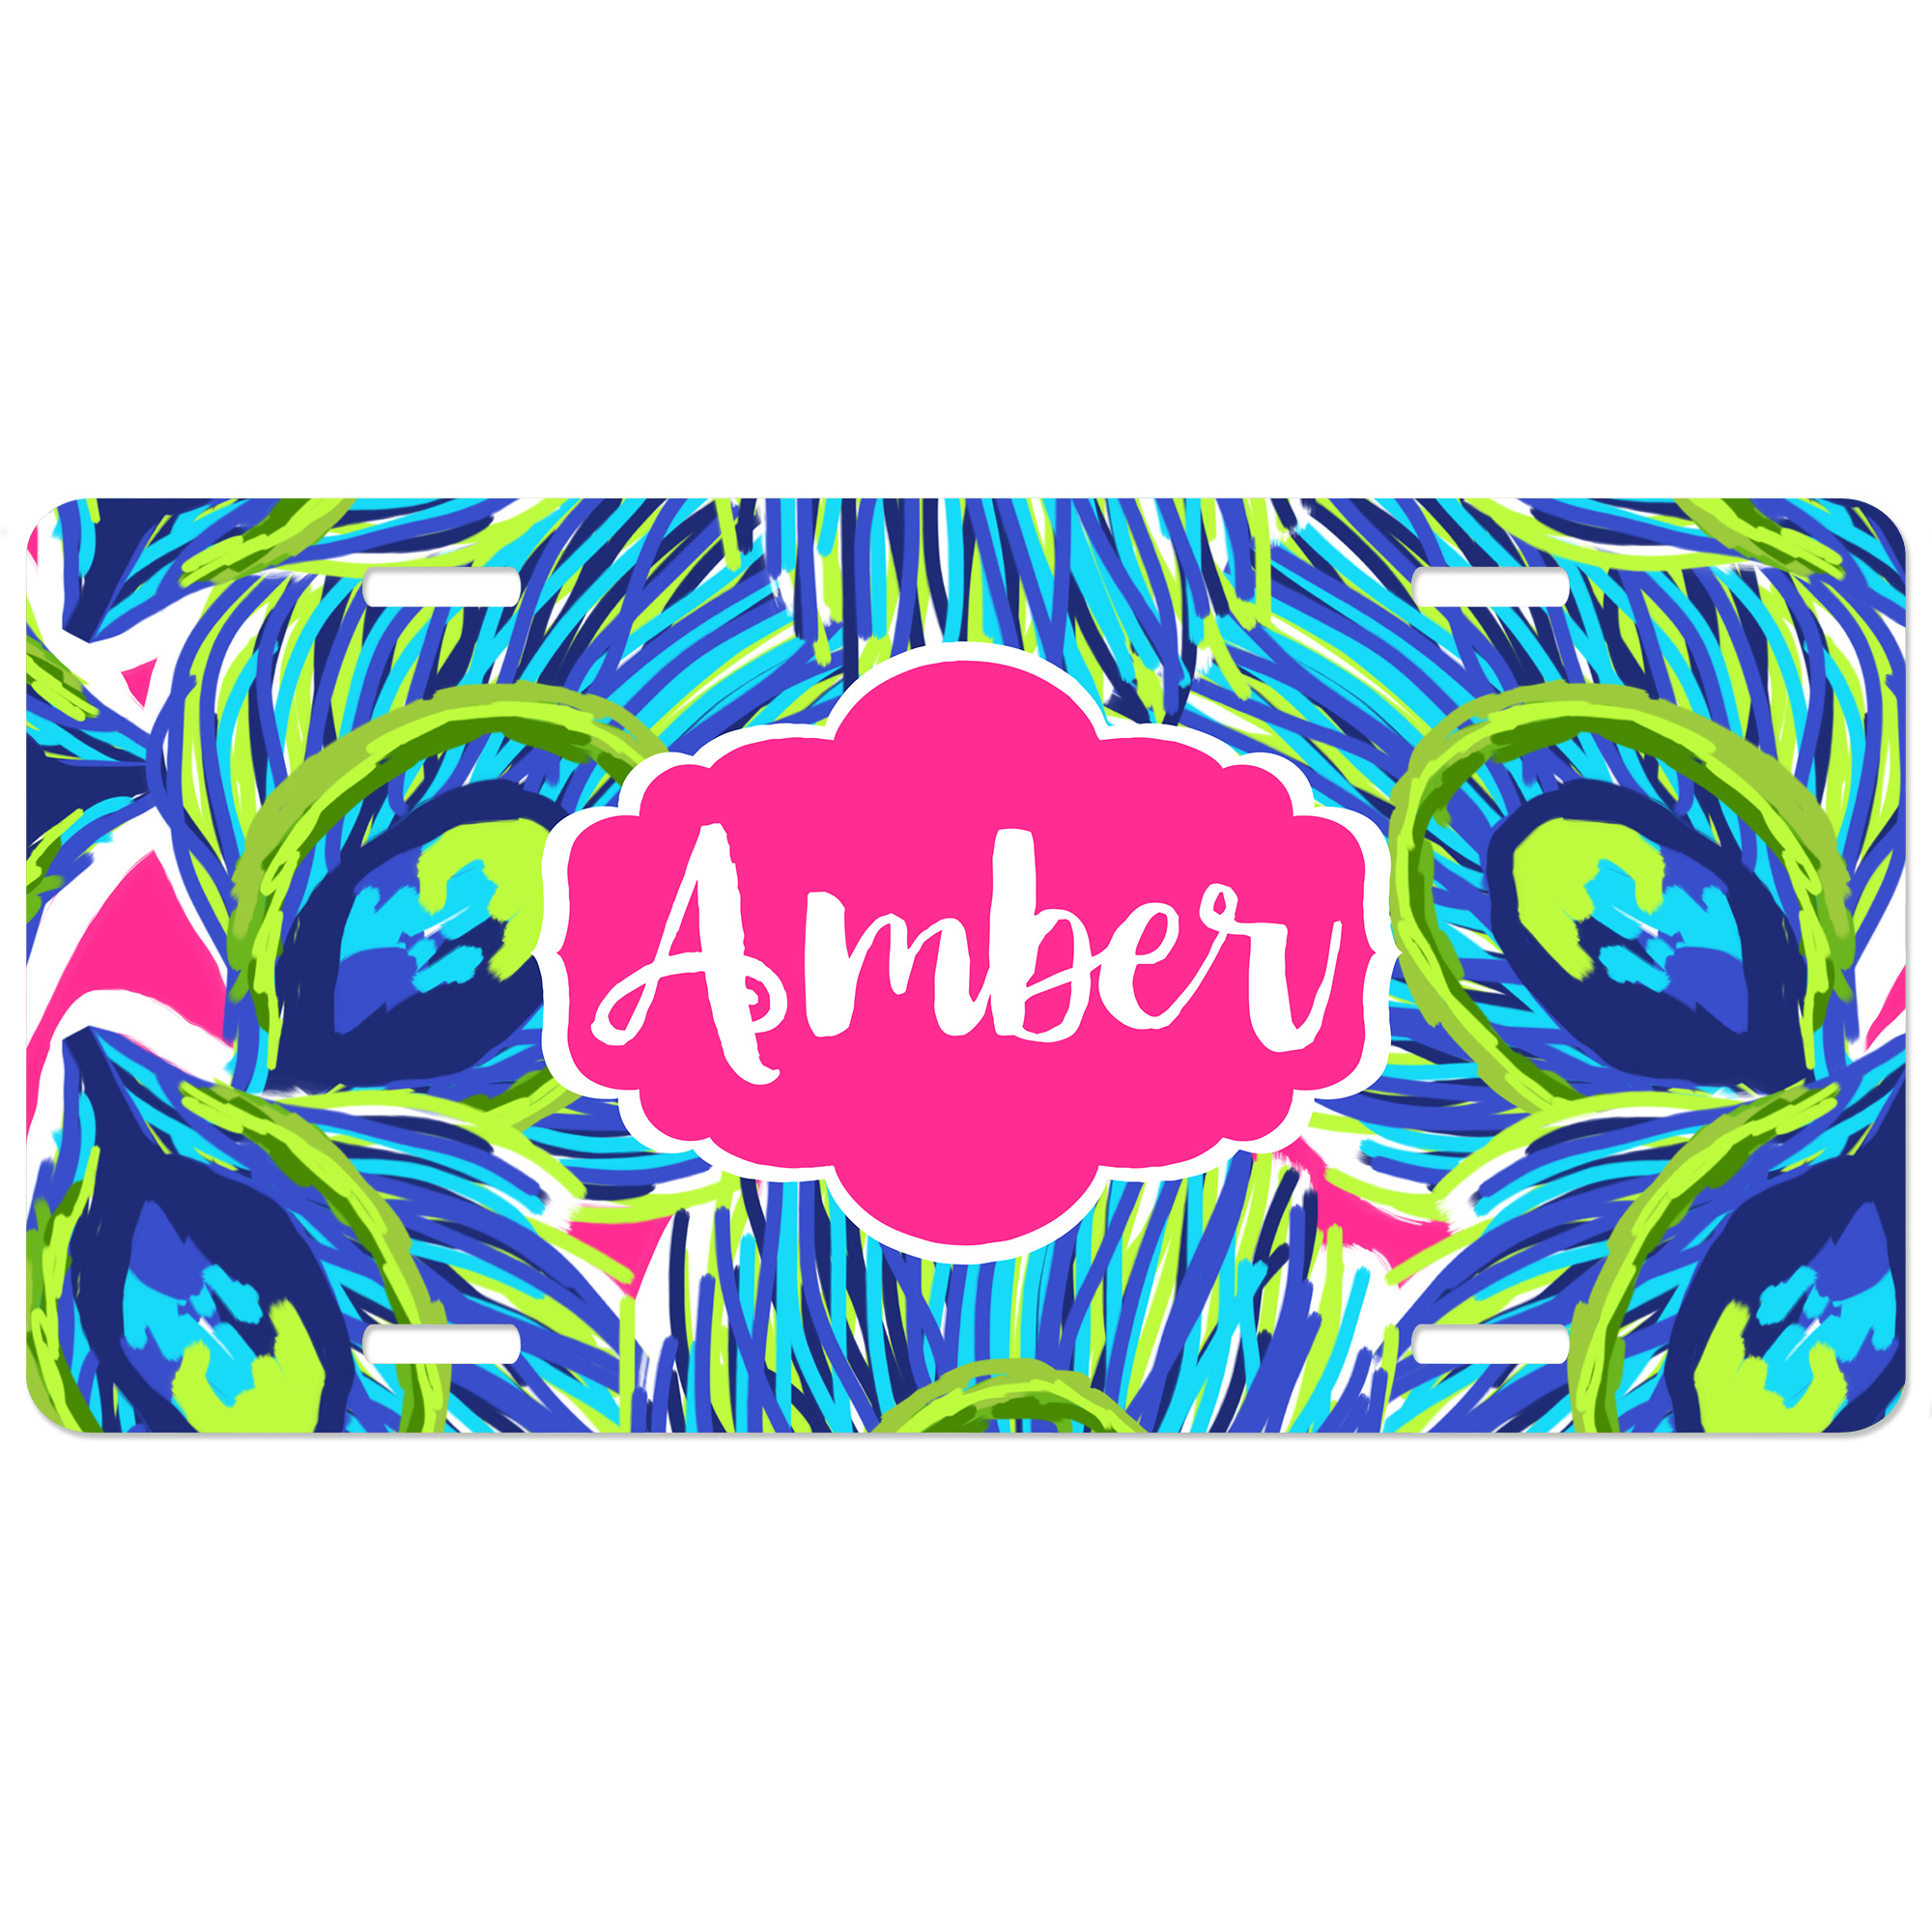 Peacock Feathers Print Personalized Car Tag - Decorative License Plate Lily P Inspired Car Tag Personalized Decorative License Plate Car Tag ...  sc 1 st  Lime Rikee Designs & Peacock Feathers Print Personalized Car Tag - Decorative License ...